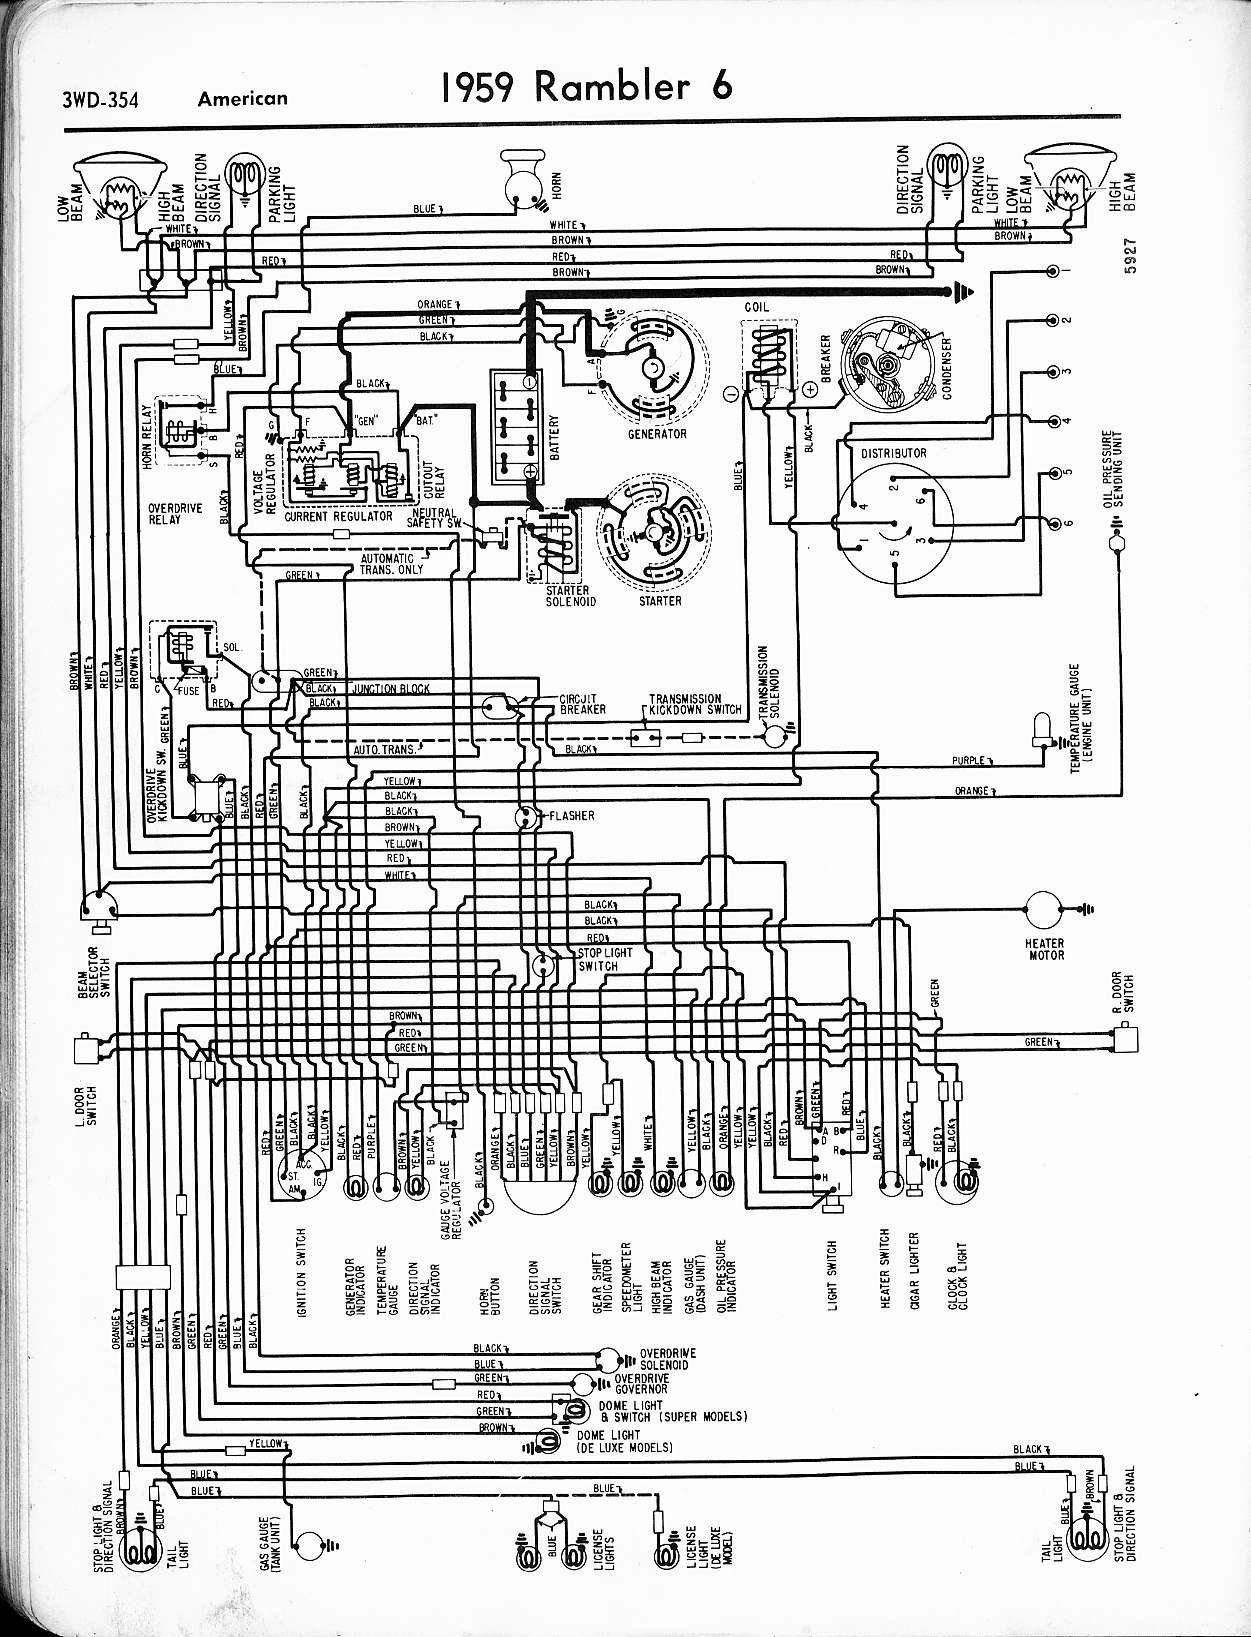 Car Audio Wiring. Wiring. Wiring Diagrams Instructions